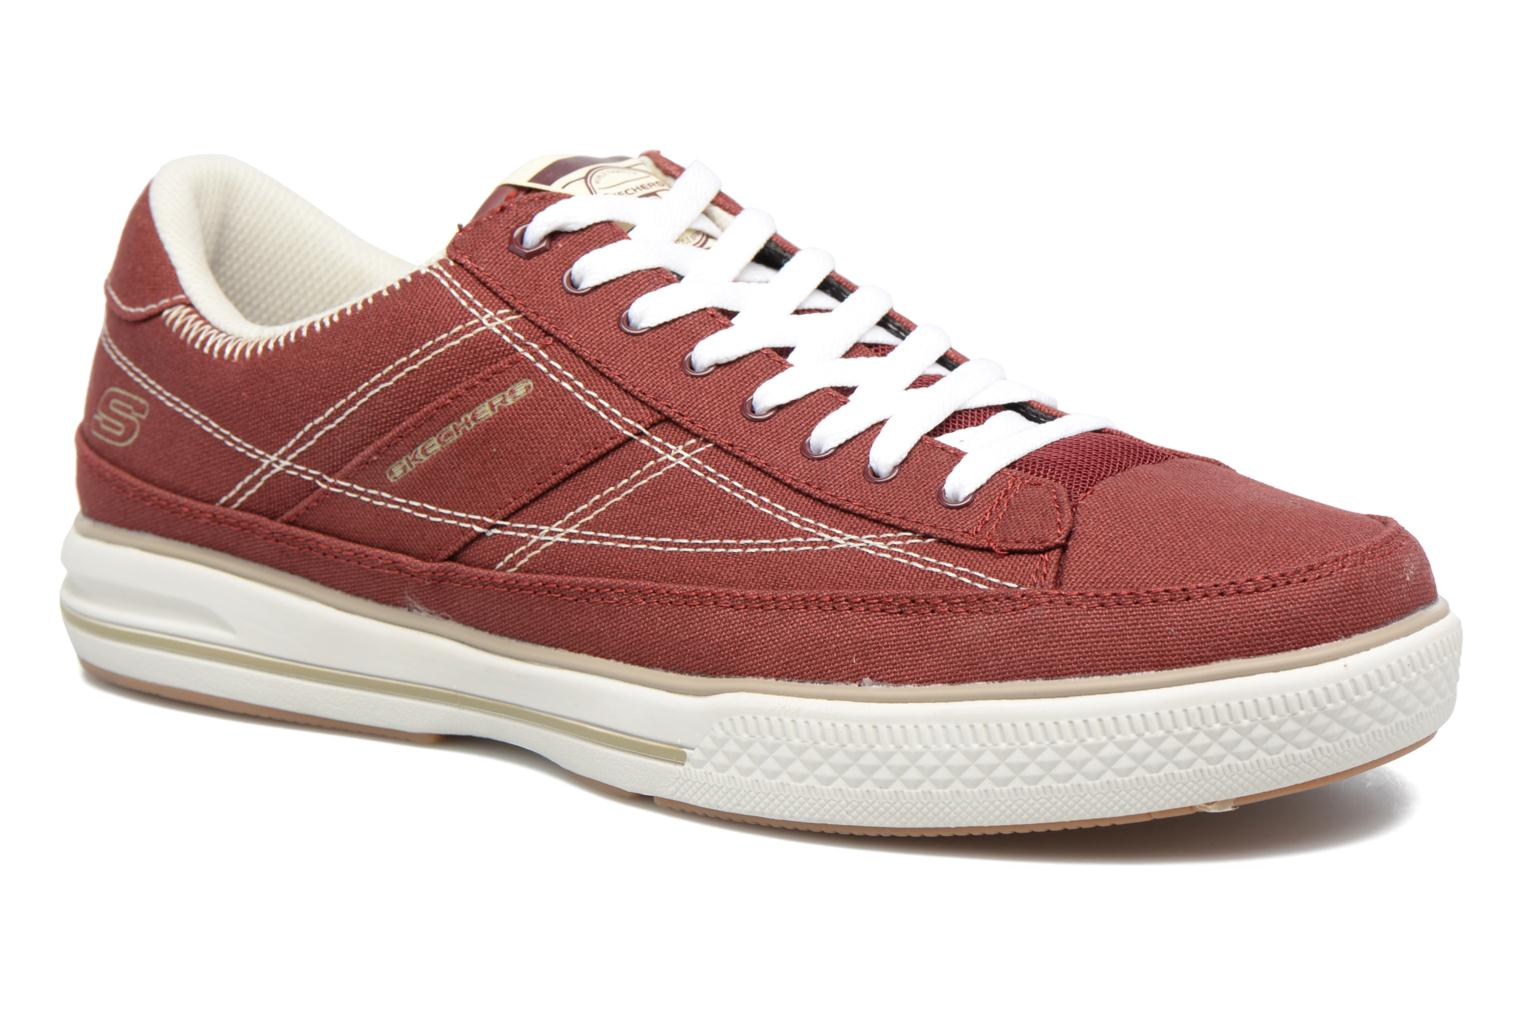 Baskets Skechers Arcade- Chat Mf 51014 Rouge vue détail/paire